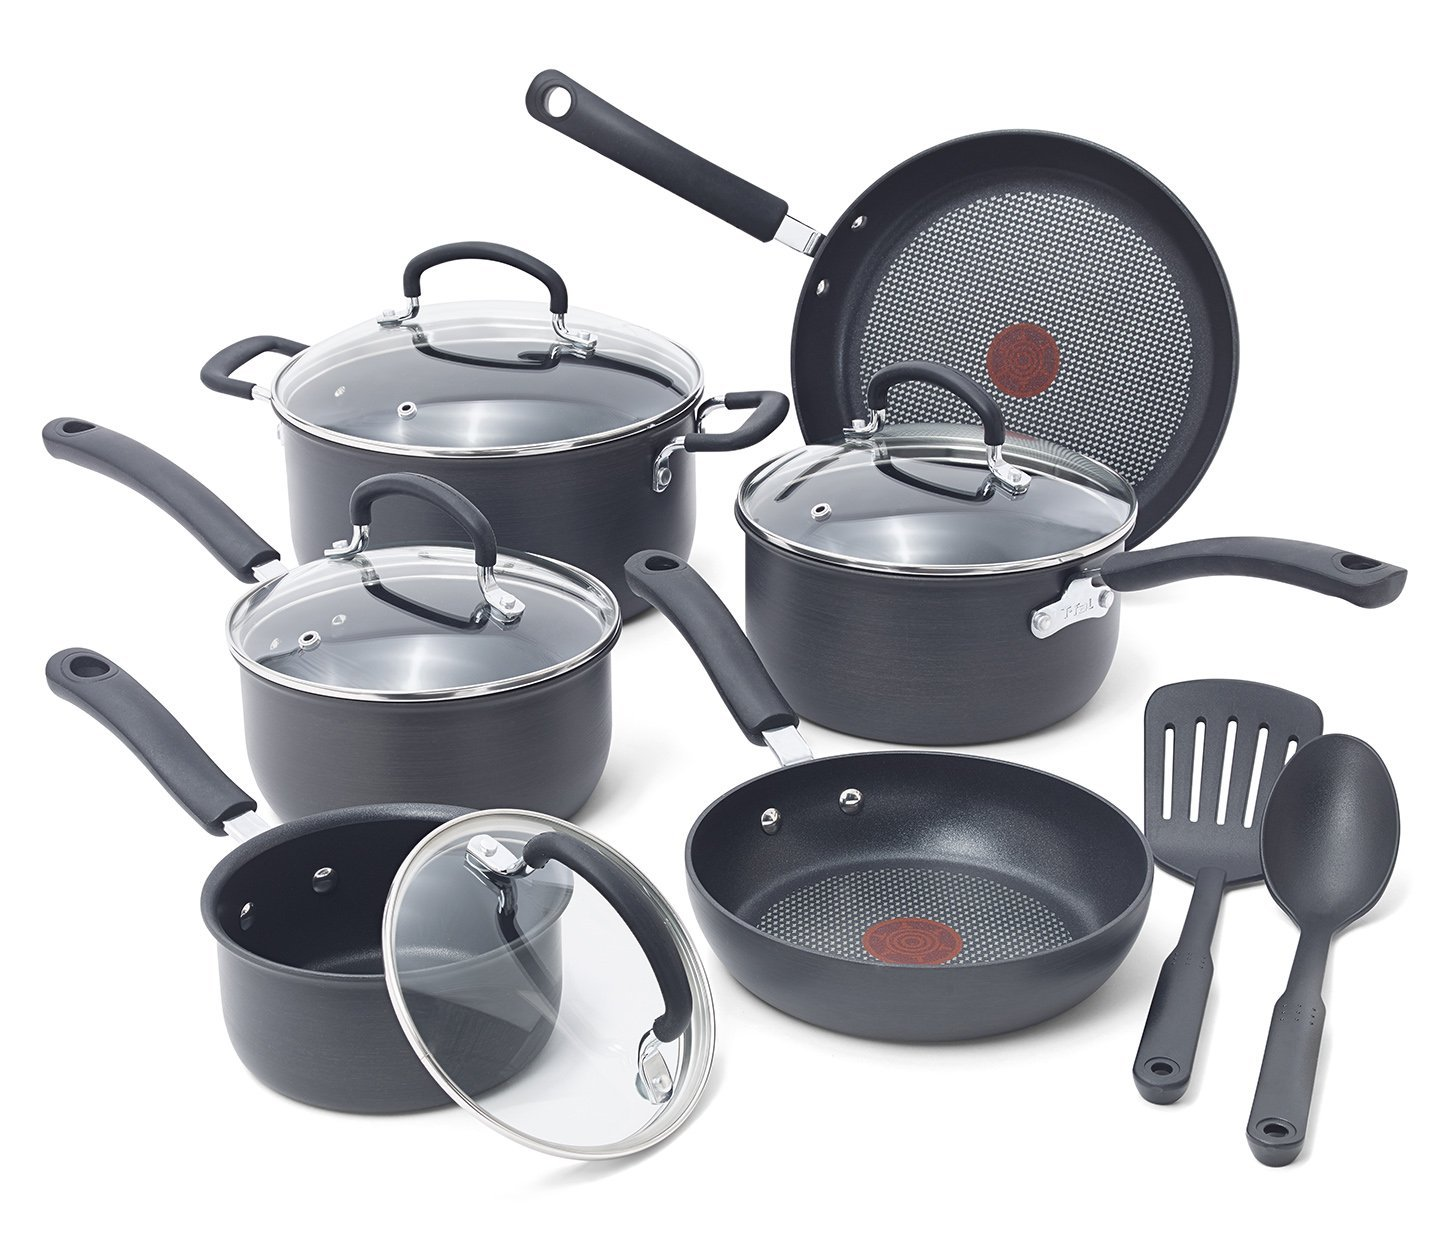 T-fal E918SA 12-Piece Thermo-Spot Heat Indicator Cookware Set